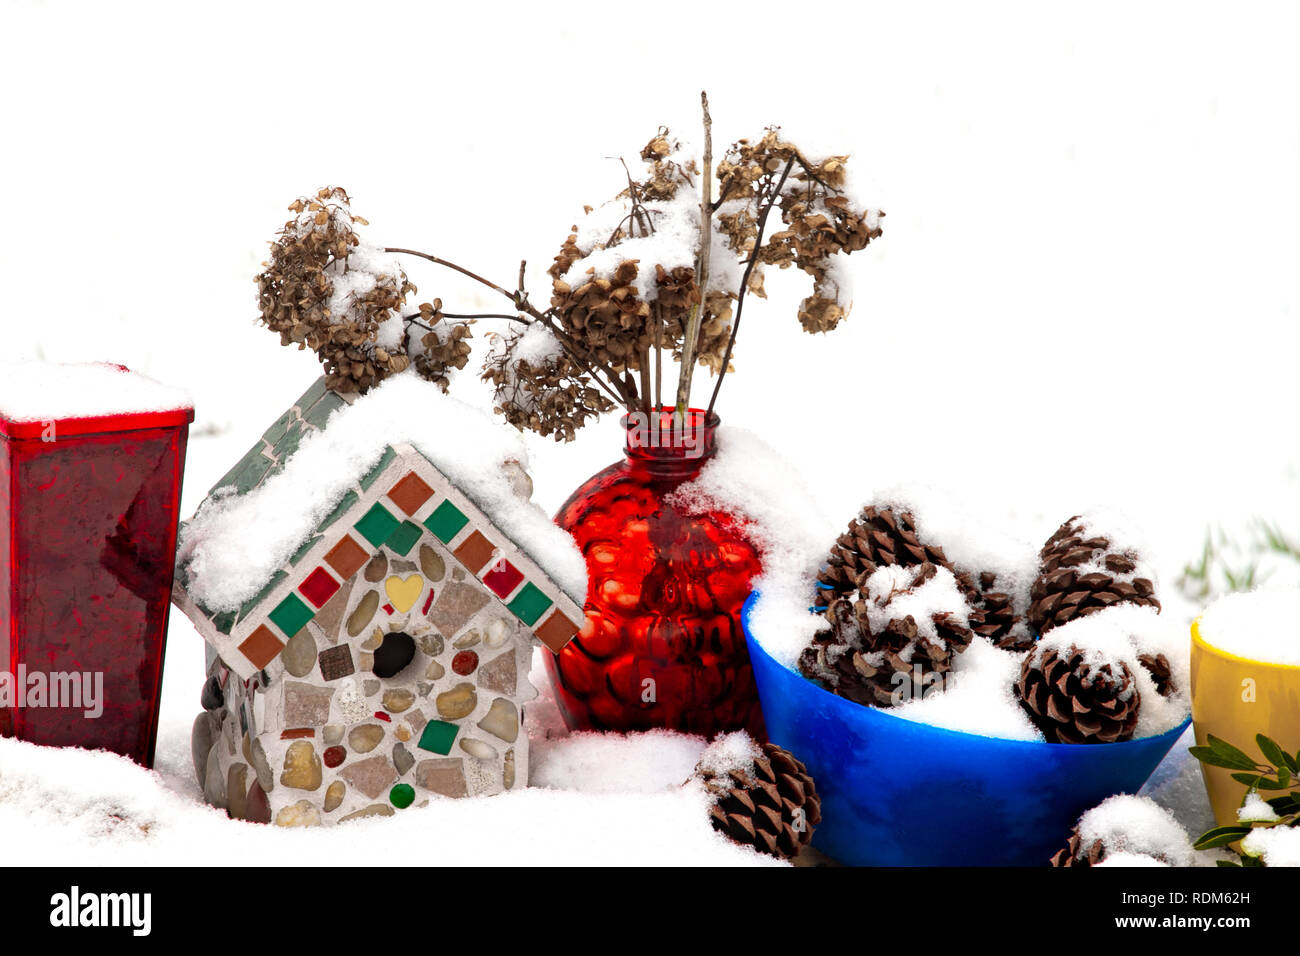 Snow-covered Birdhouse and Colorful vases and containers with Pinecones and Dried Flowers - Stock Image